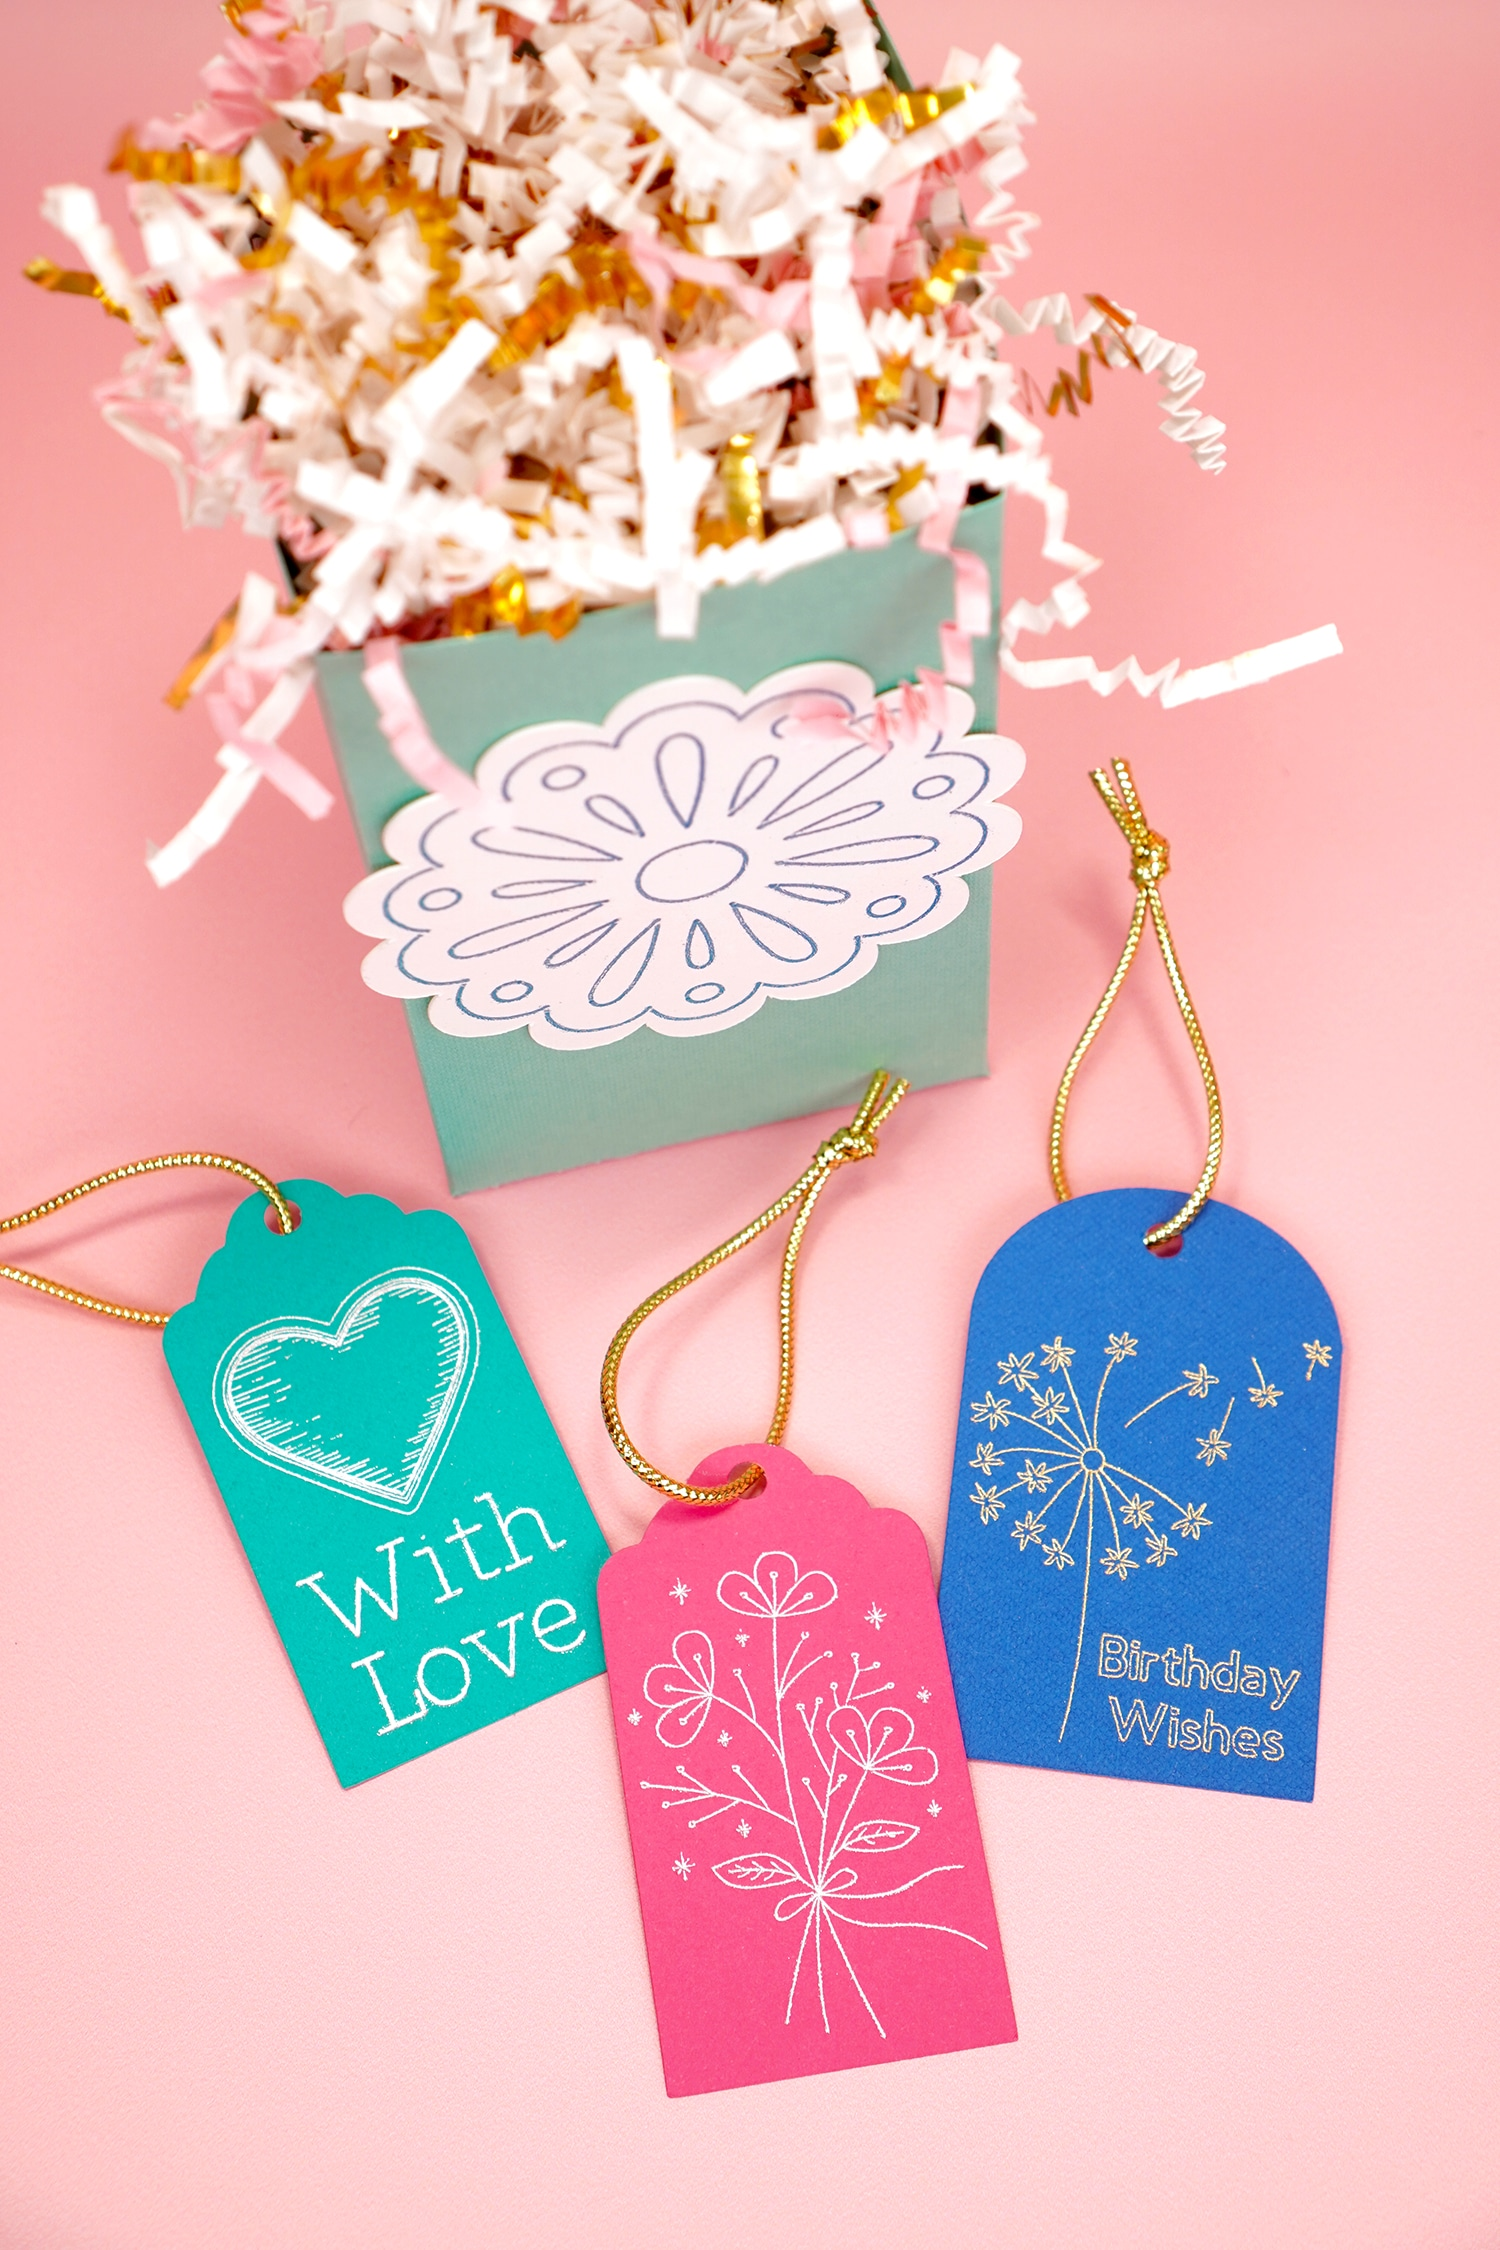 Colorful foil embellished gift tags and gift bag on coral background